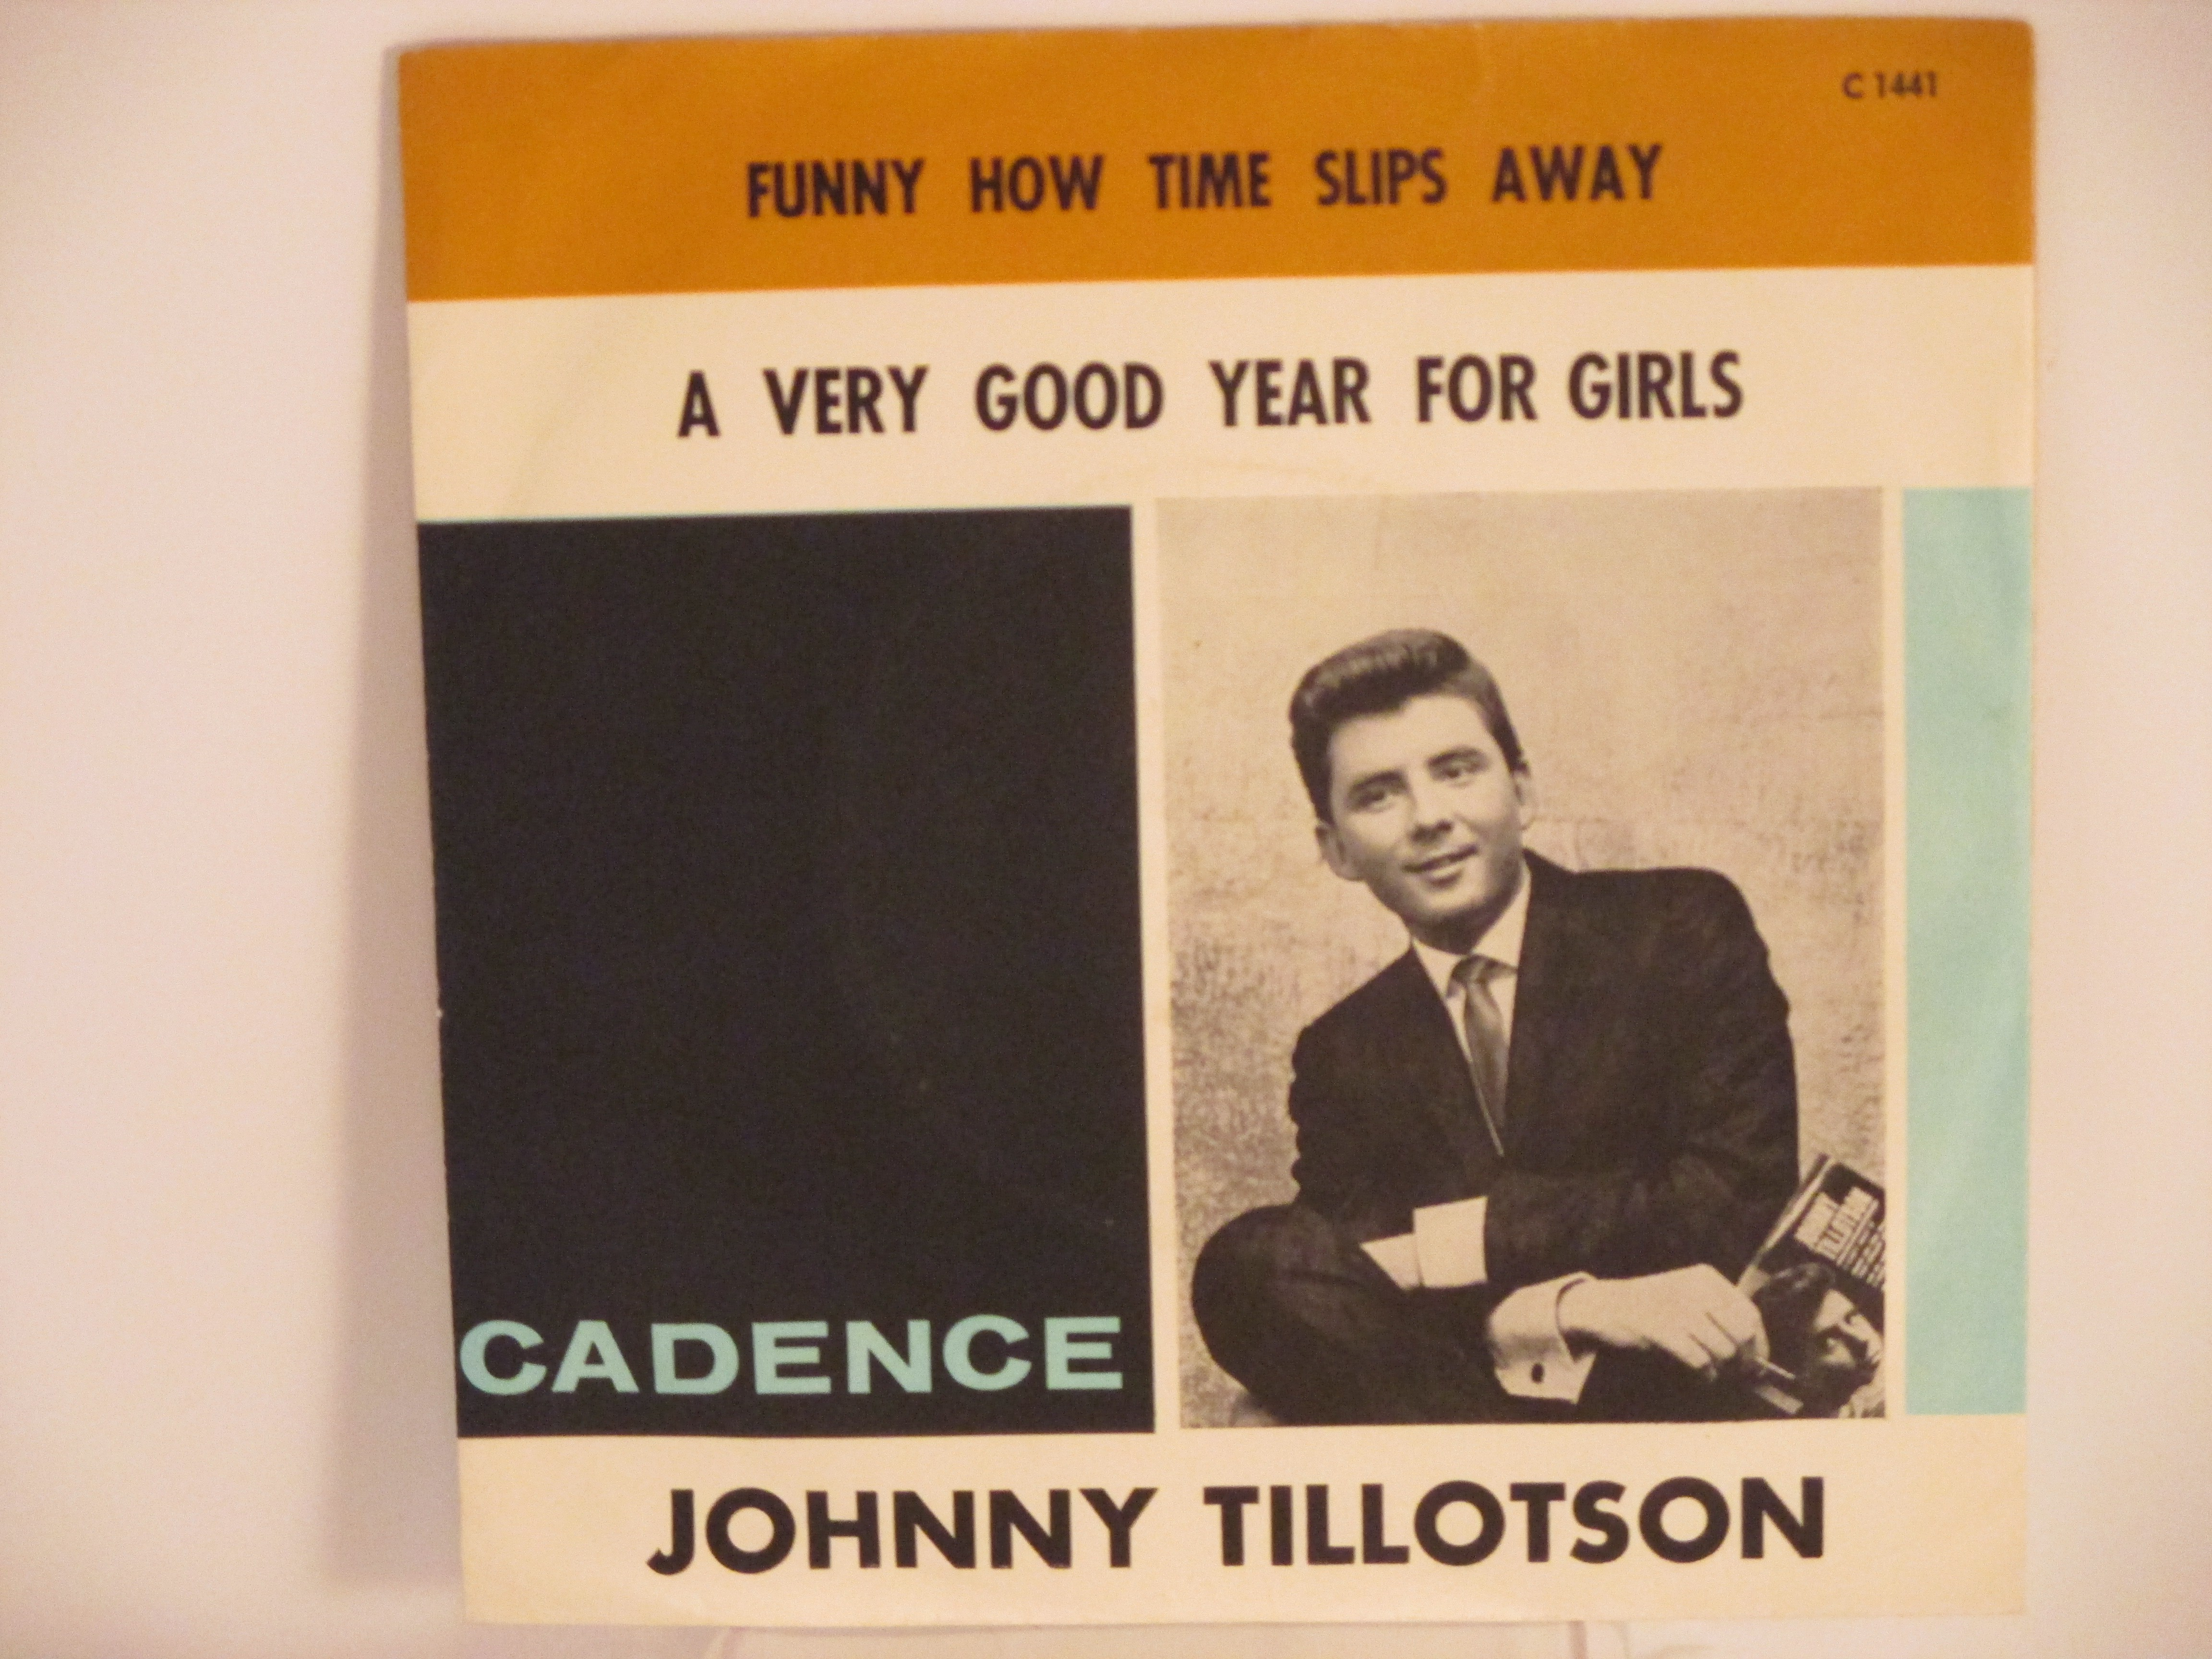 JOHNNY TILLOTSON : Funny how time slips away / A very good year for girls